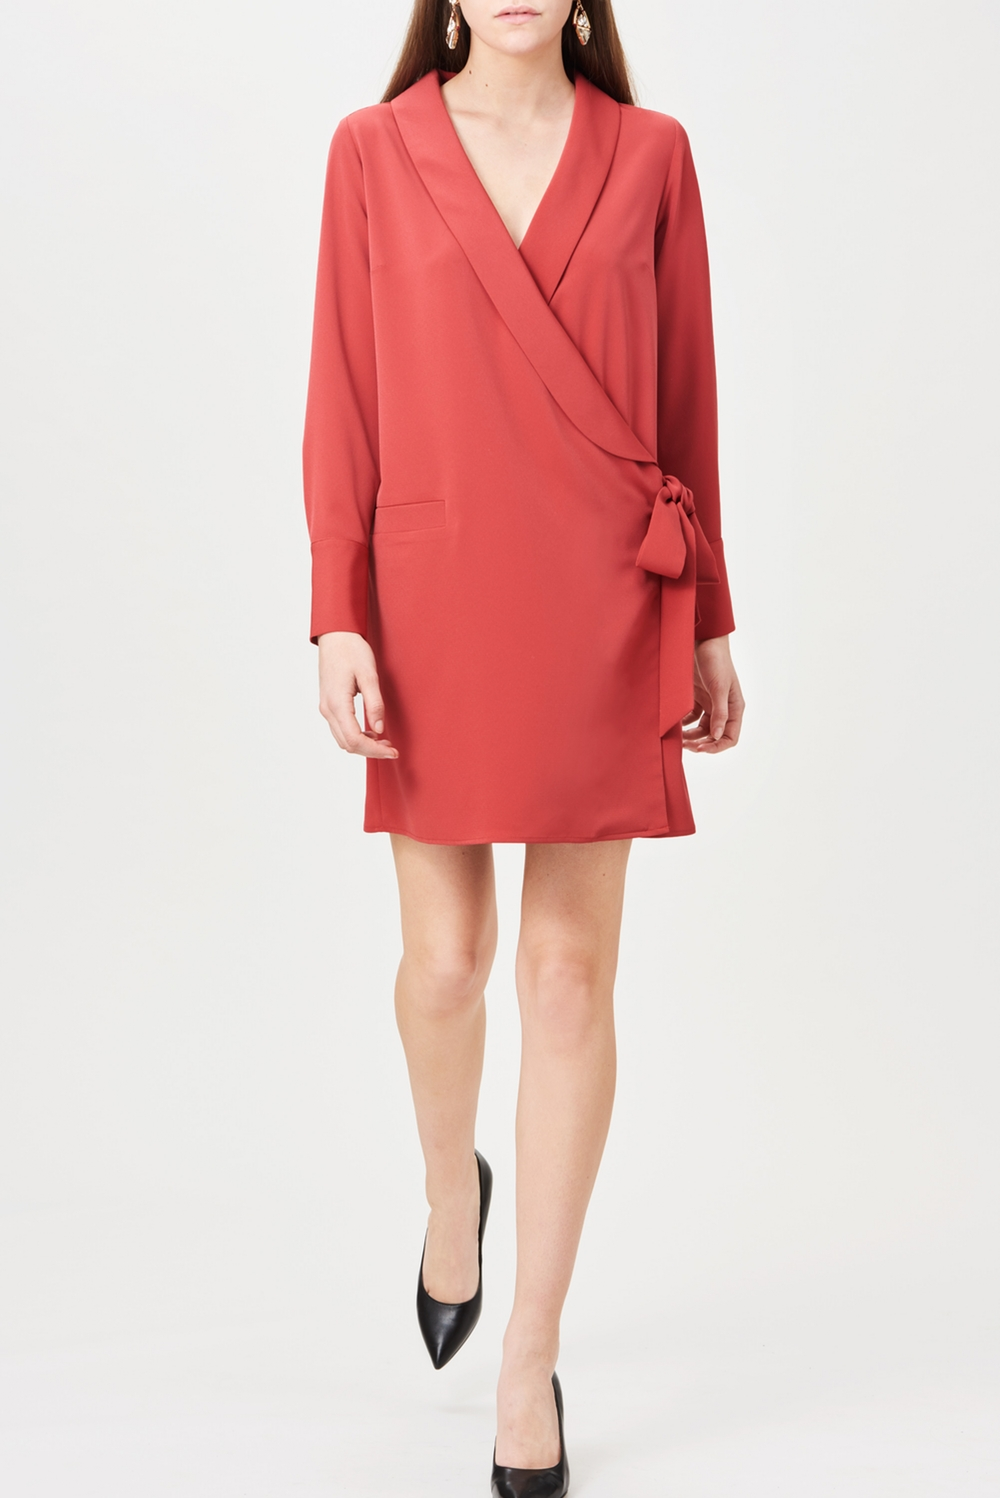 Billie & Me Eugenie Dress Roseship